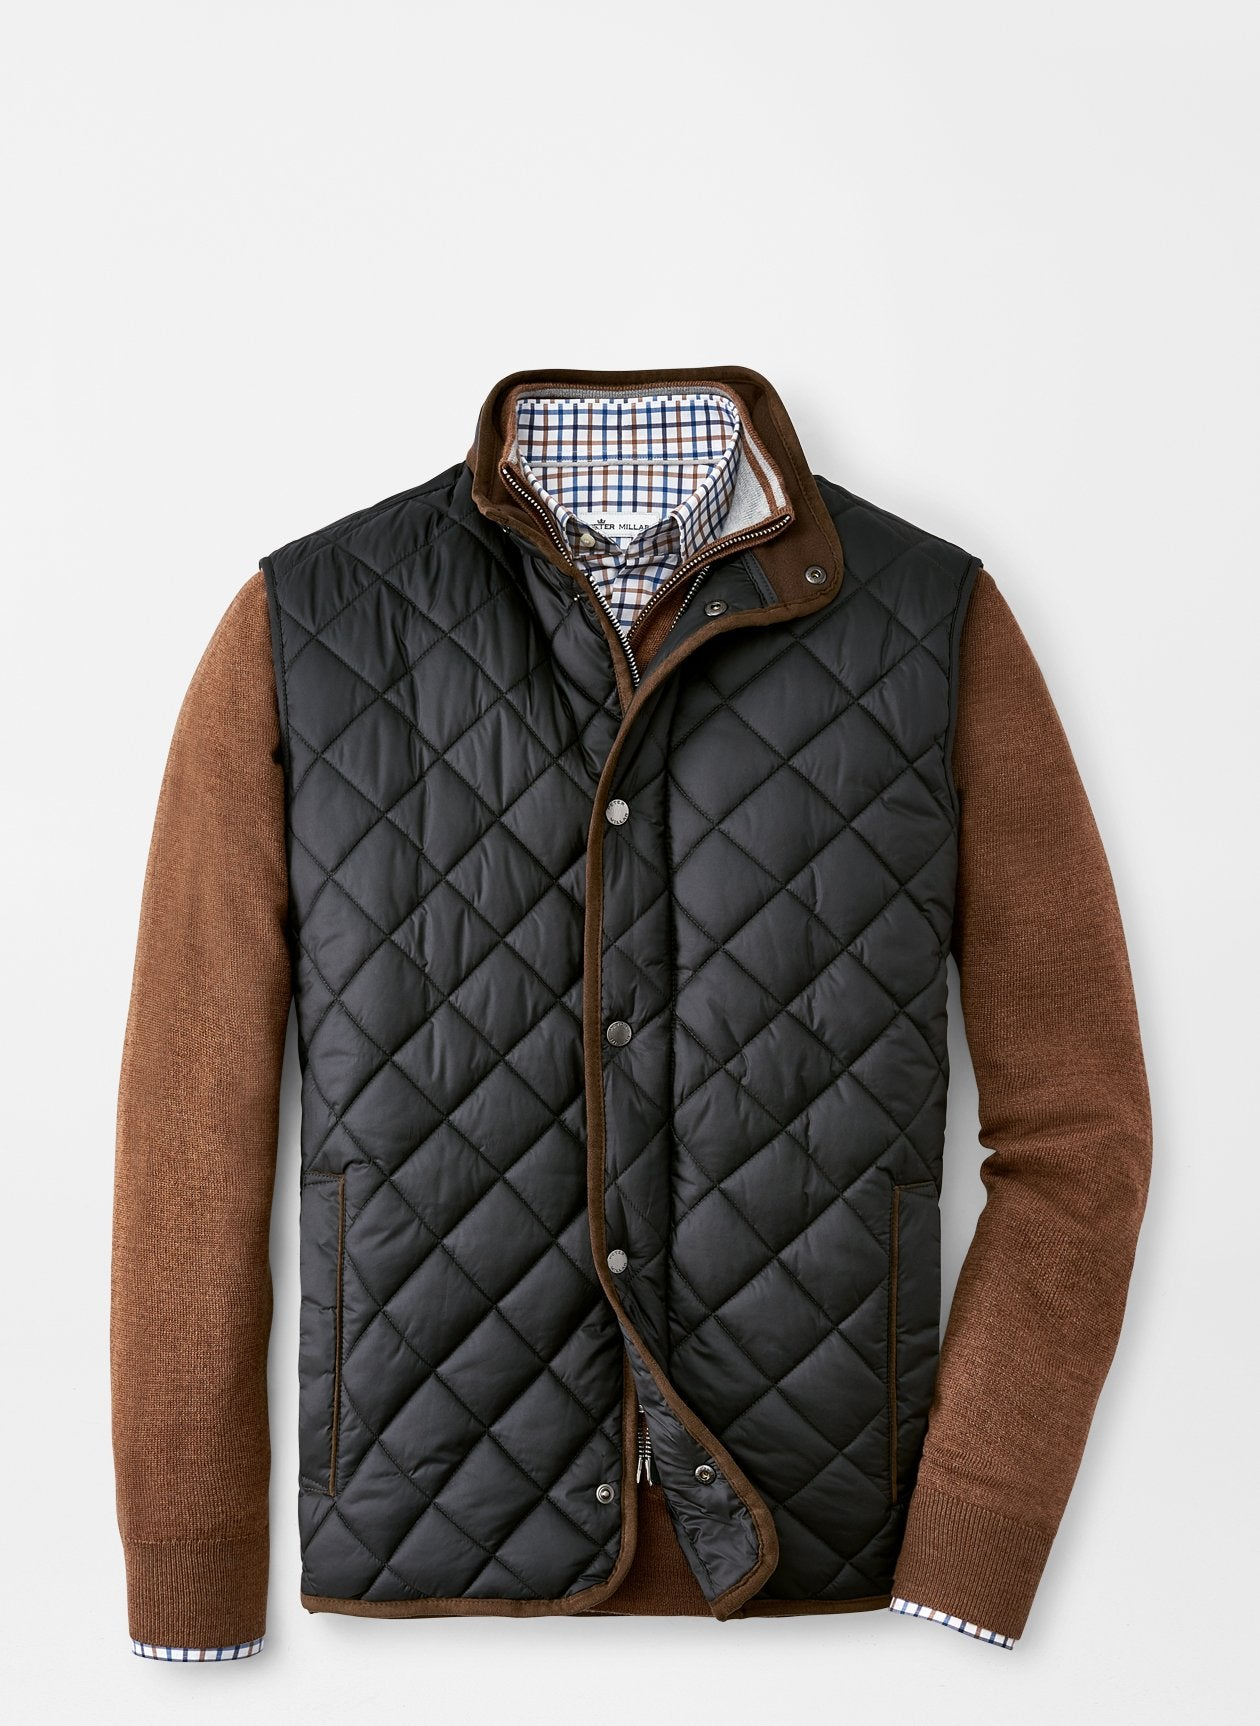 PETER MILLAR Men's Outerwear Peter Millar Essex Quilted Travel Vest || David's Clothing